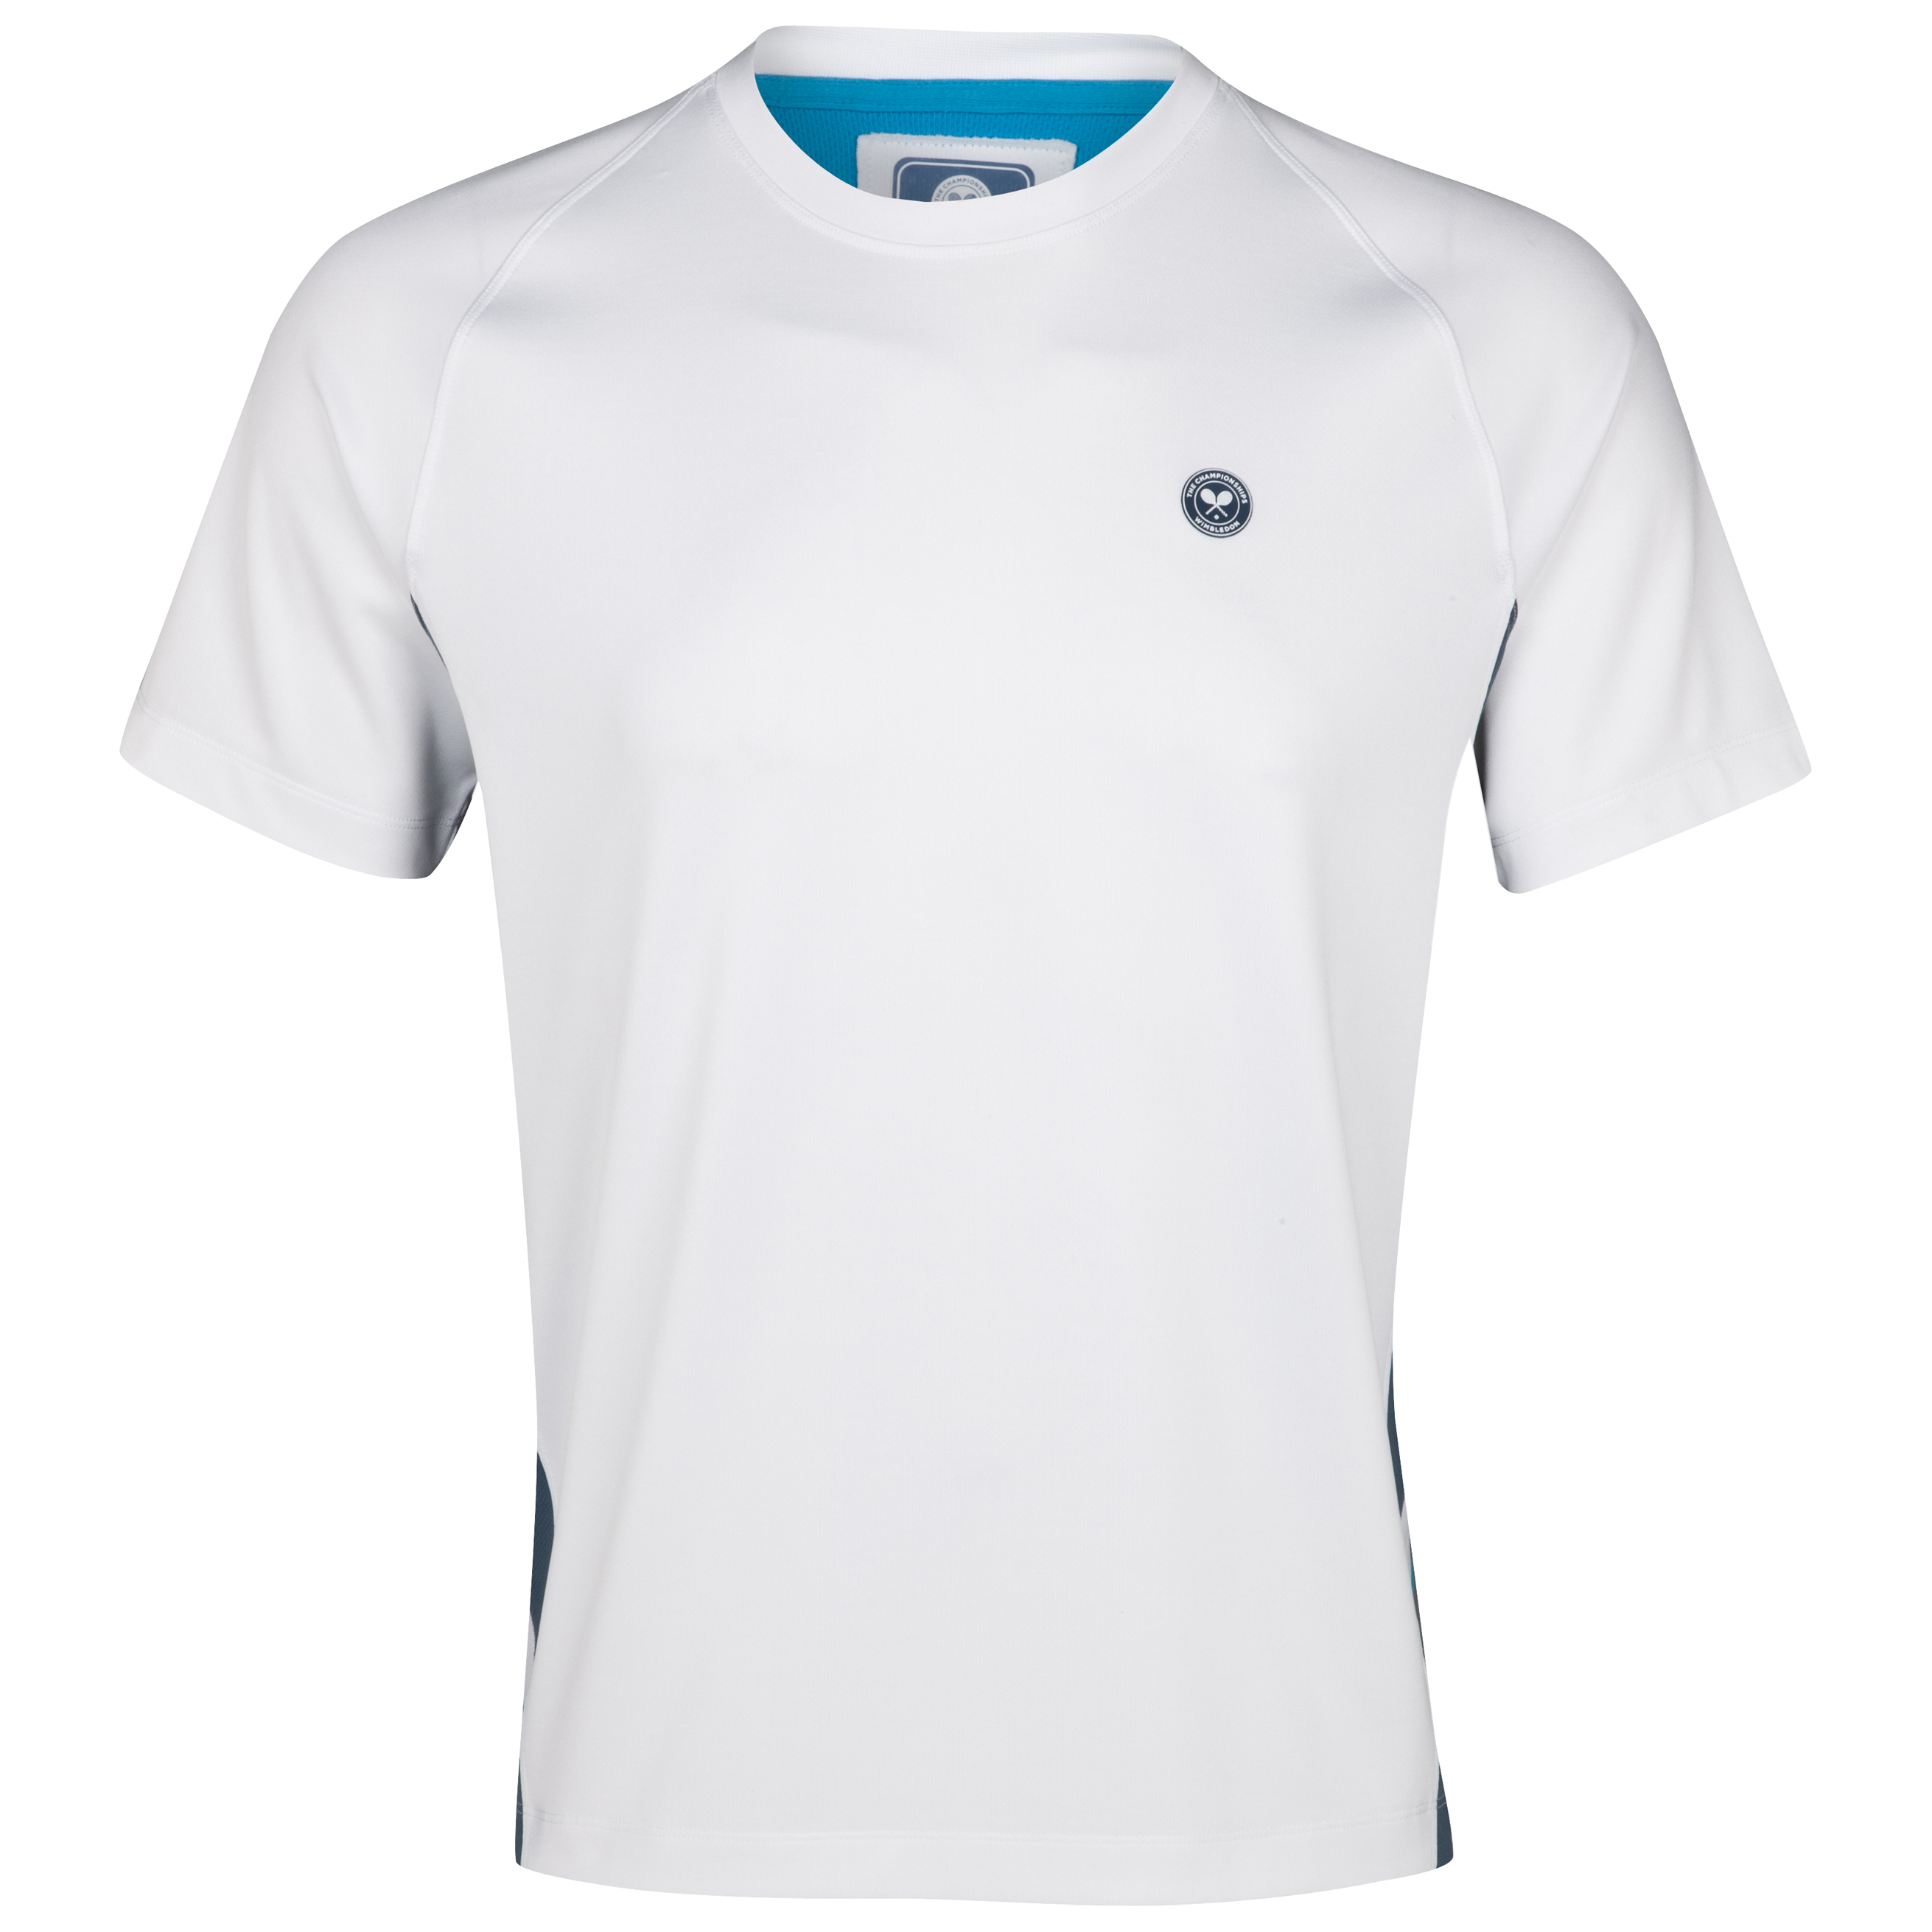 Wimbledon Player T- Shirt - White